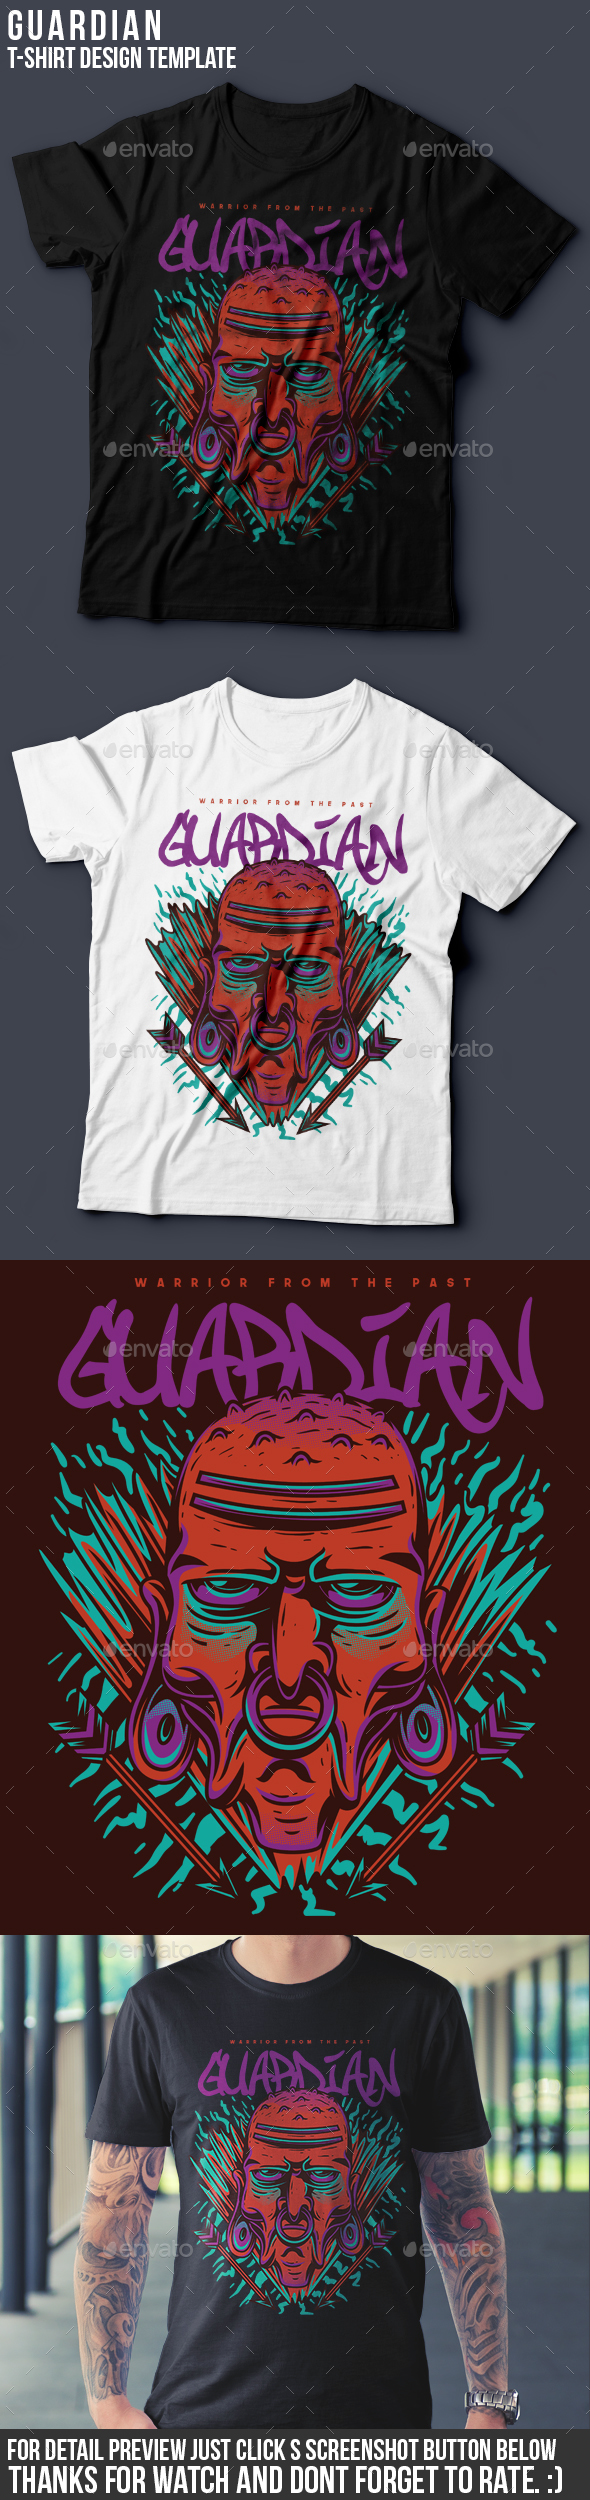 Guardian T-Shirt Design - Grunge Designs